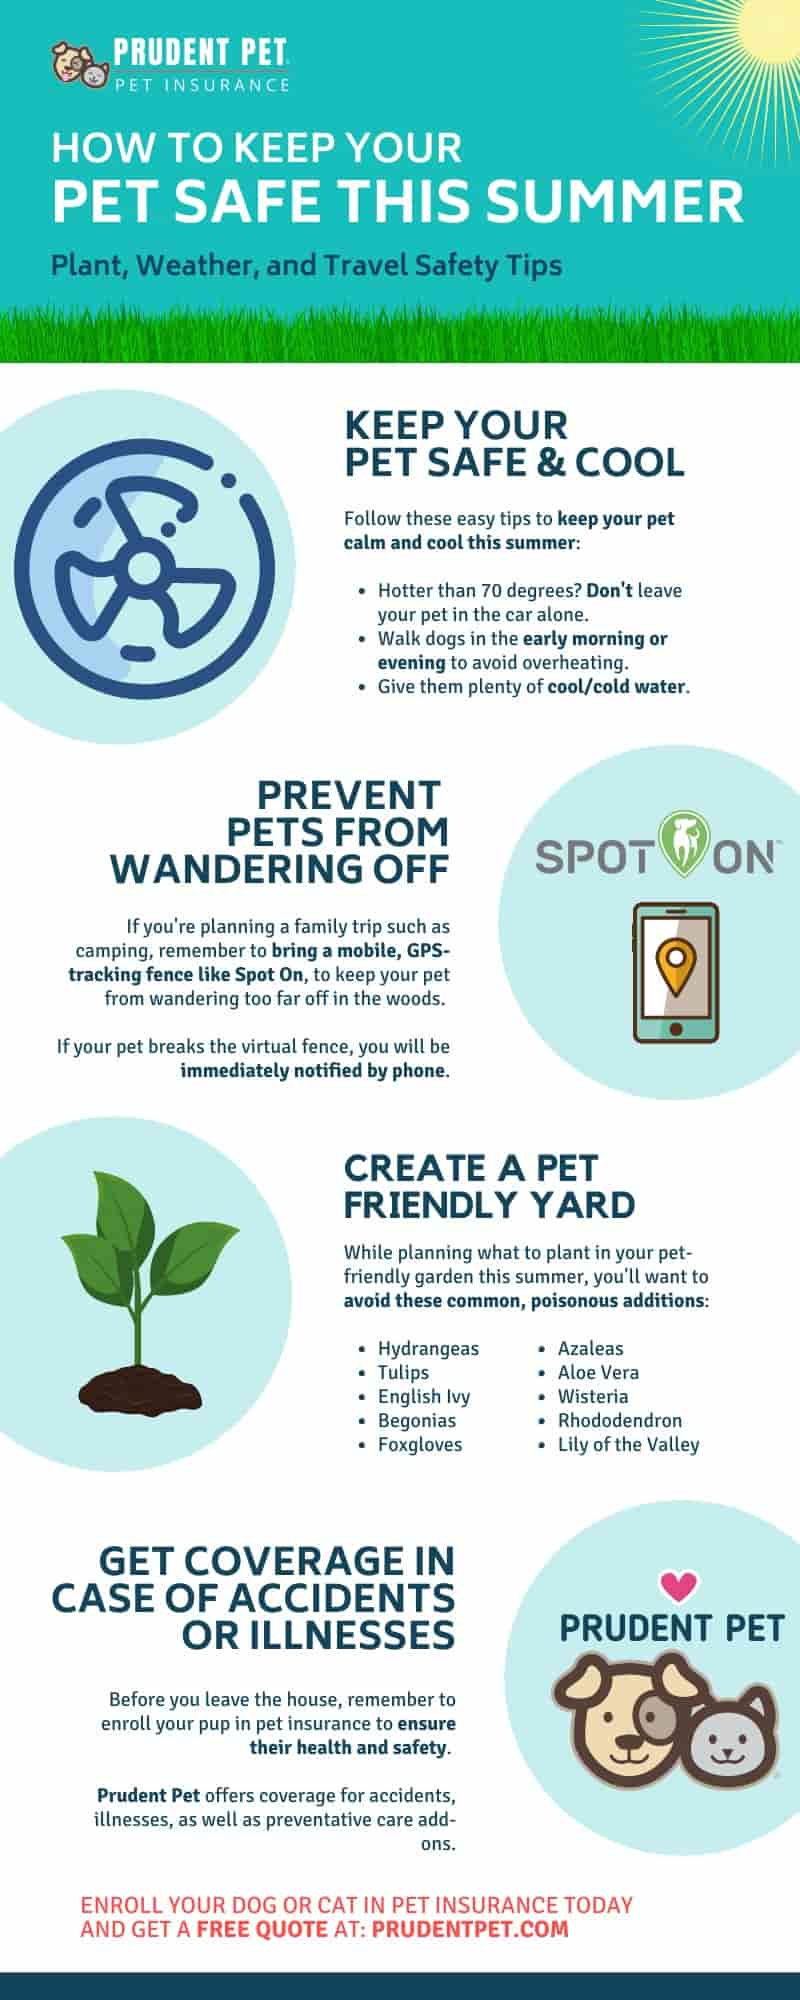 Prudent Pet infographic for summer safety tips